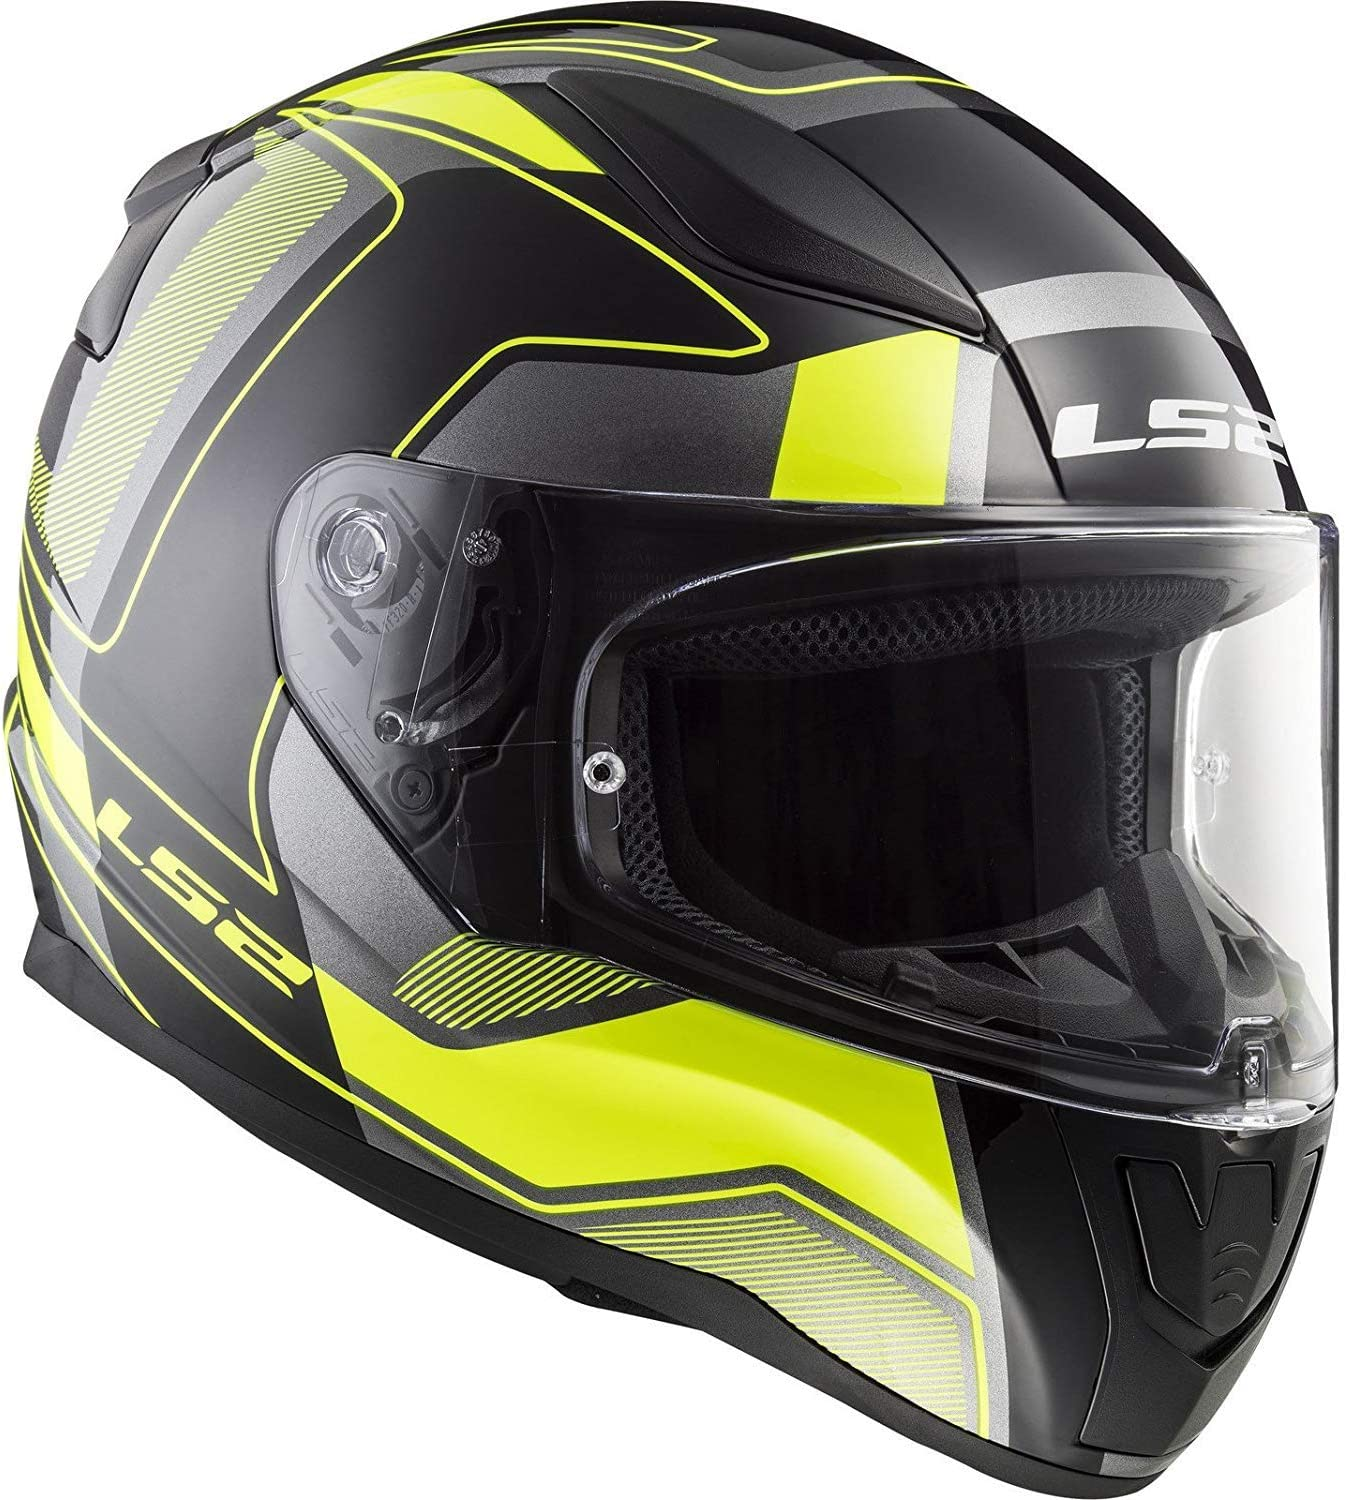 Color Coveralls Carrera Black//Hi-Viz Yellow XS MOTORCYCLE HELMETS LS2 FF353 Rapid Full Face Motorcycle Sport Scooters Touring Full Face Racing Helmet